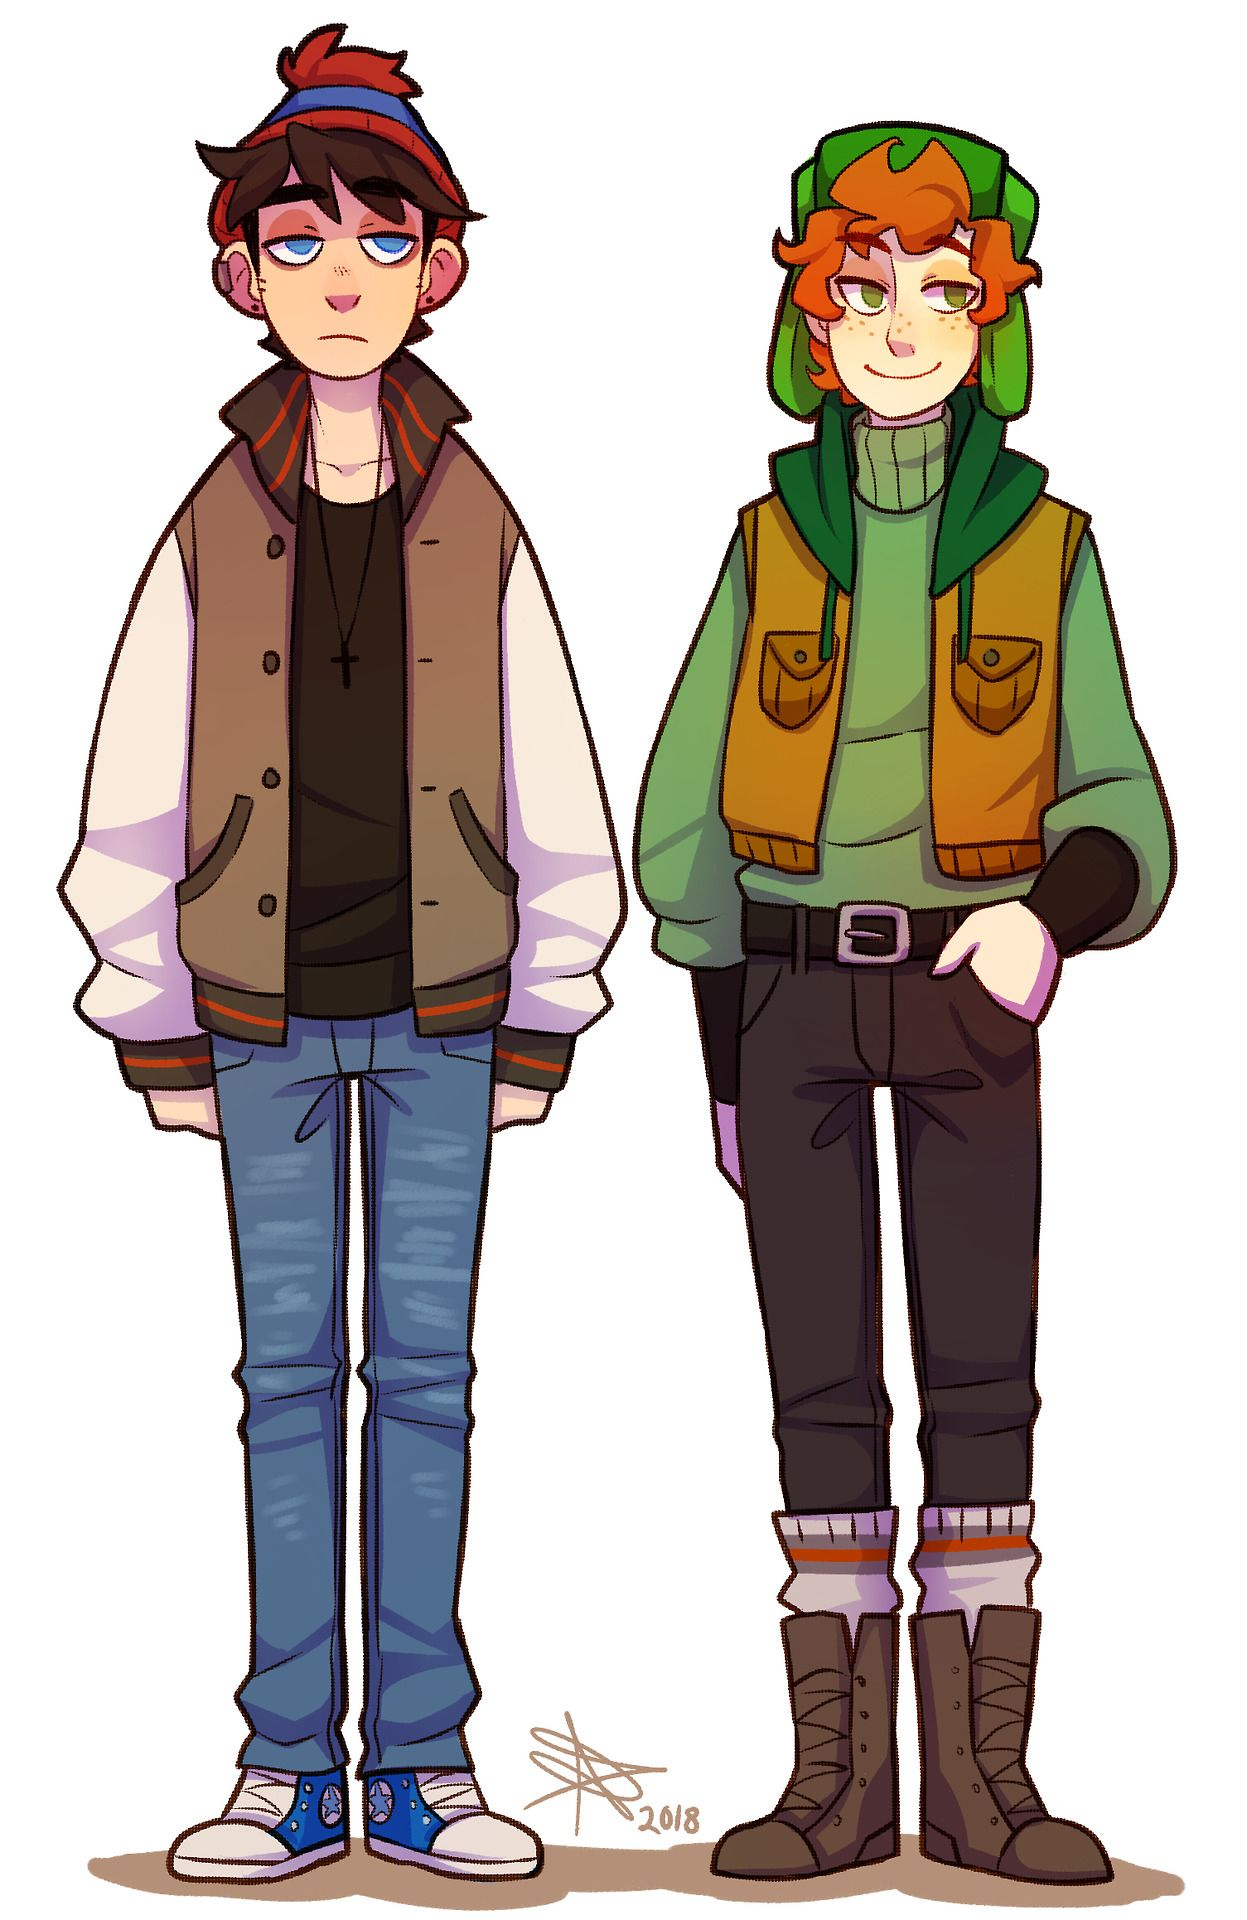 Older Stan And Kyle Designs 3c Style South Park Kyle South Park South Park Anime